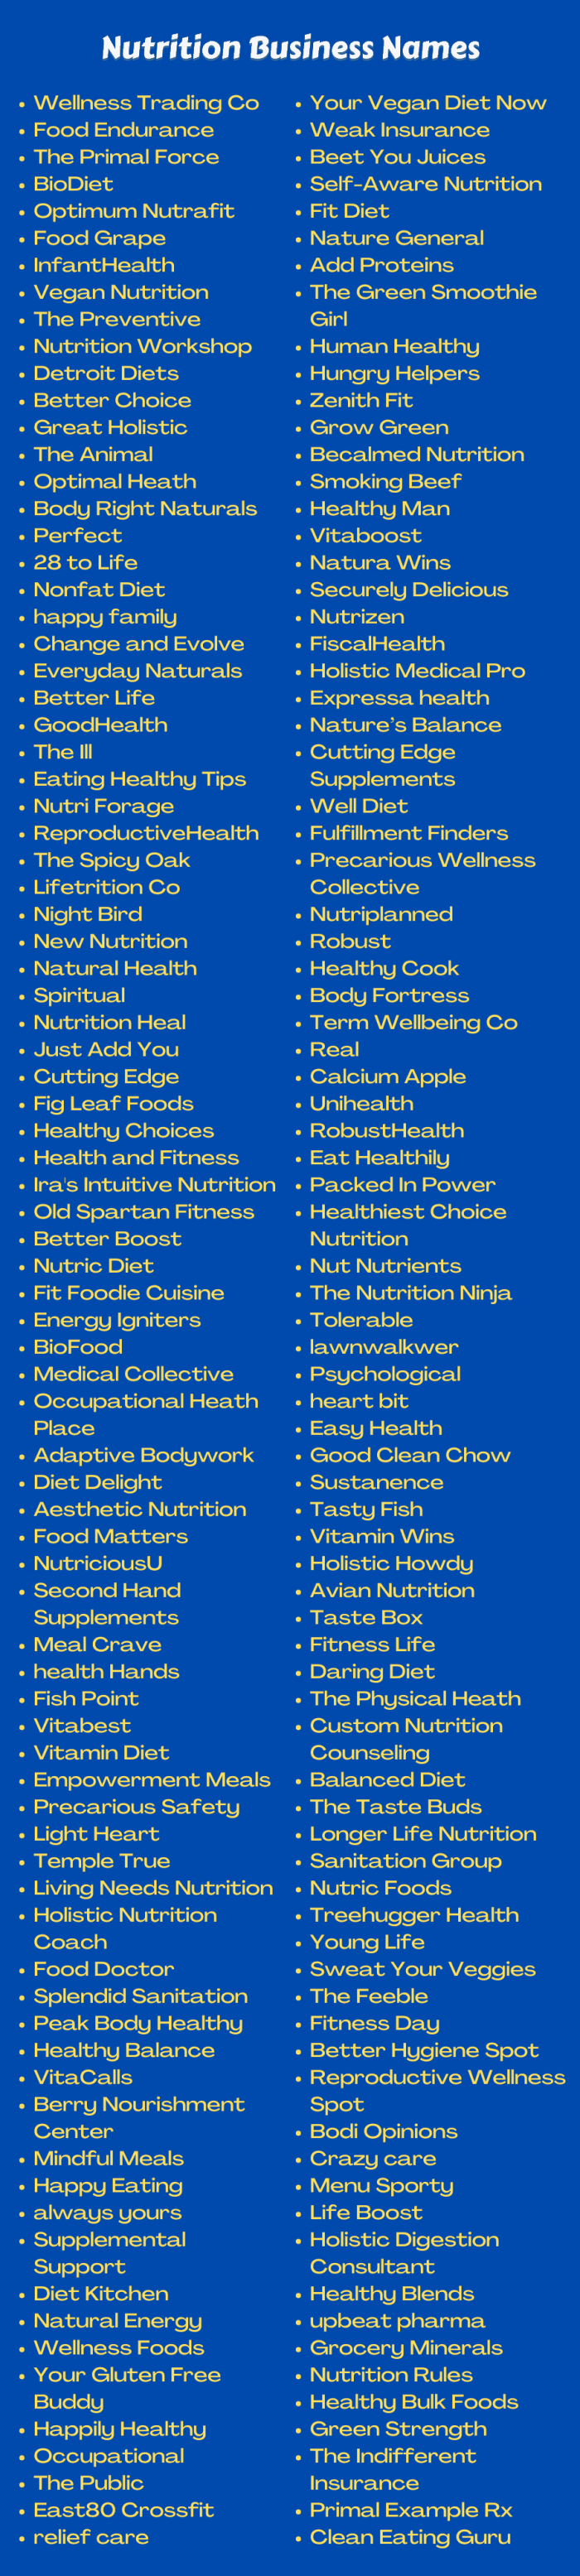 Nutrition Business Names